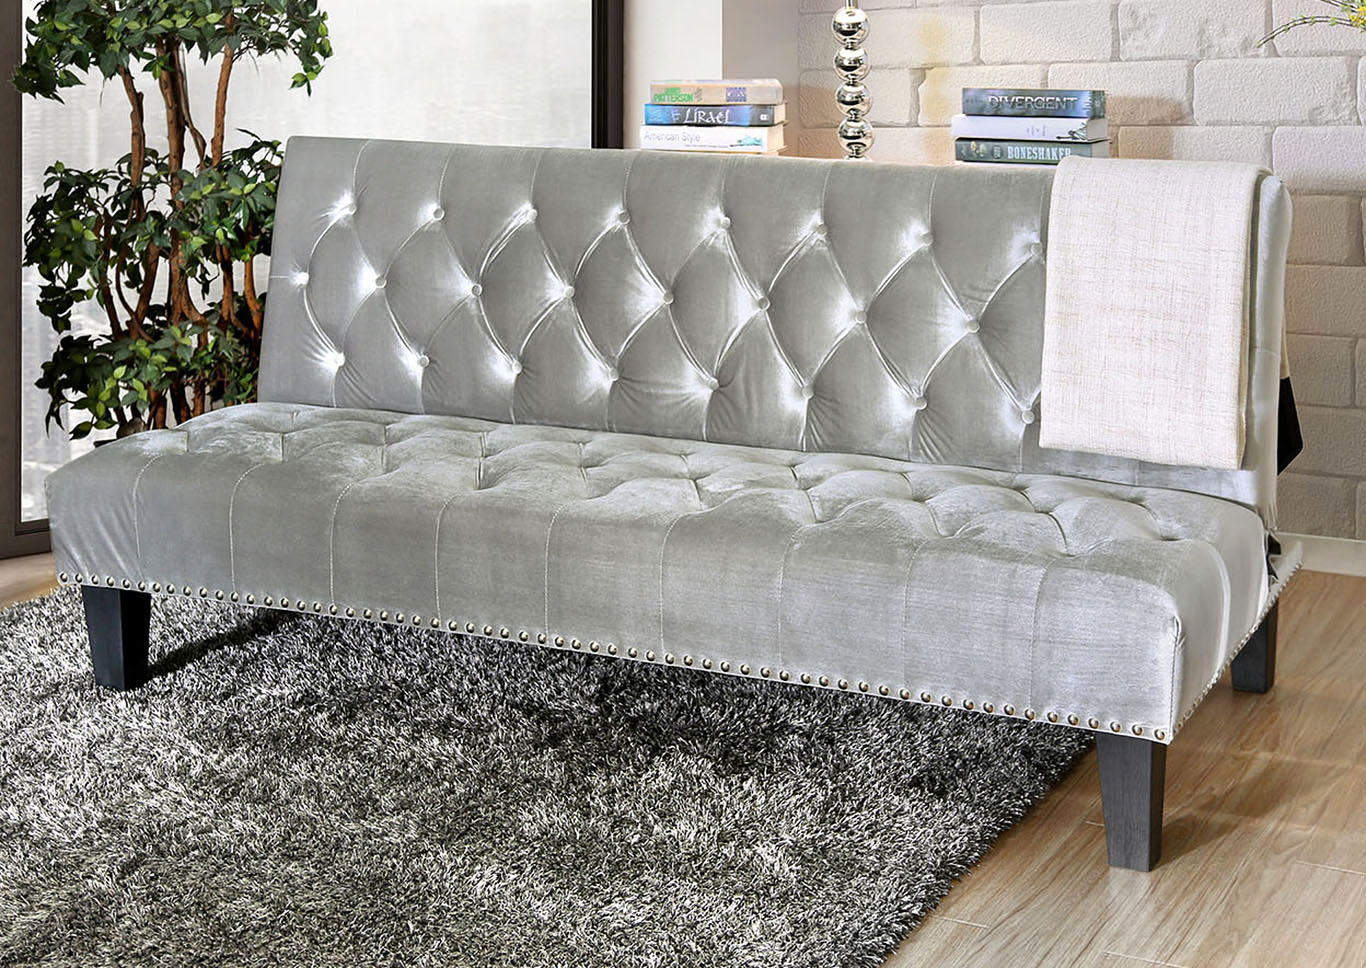 Cootehill Gray Futon Sofa,Furniture of America